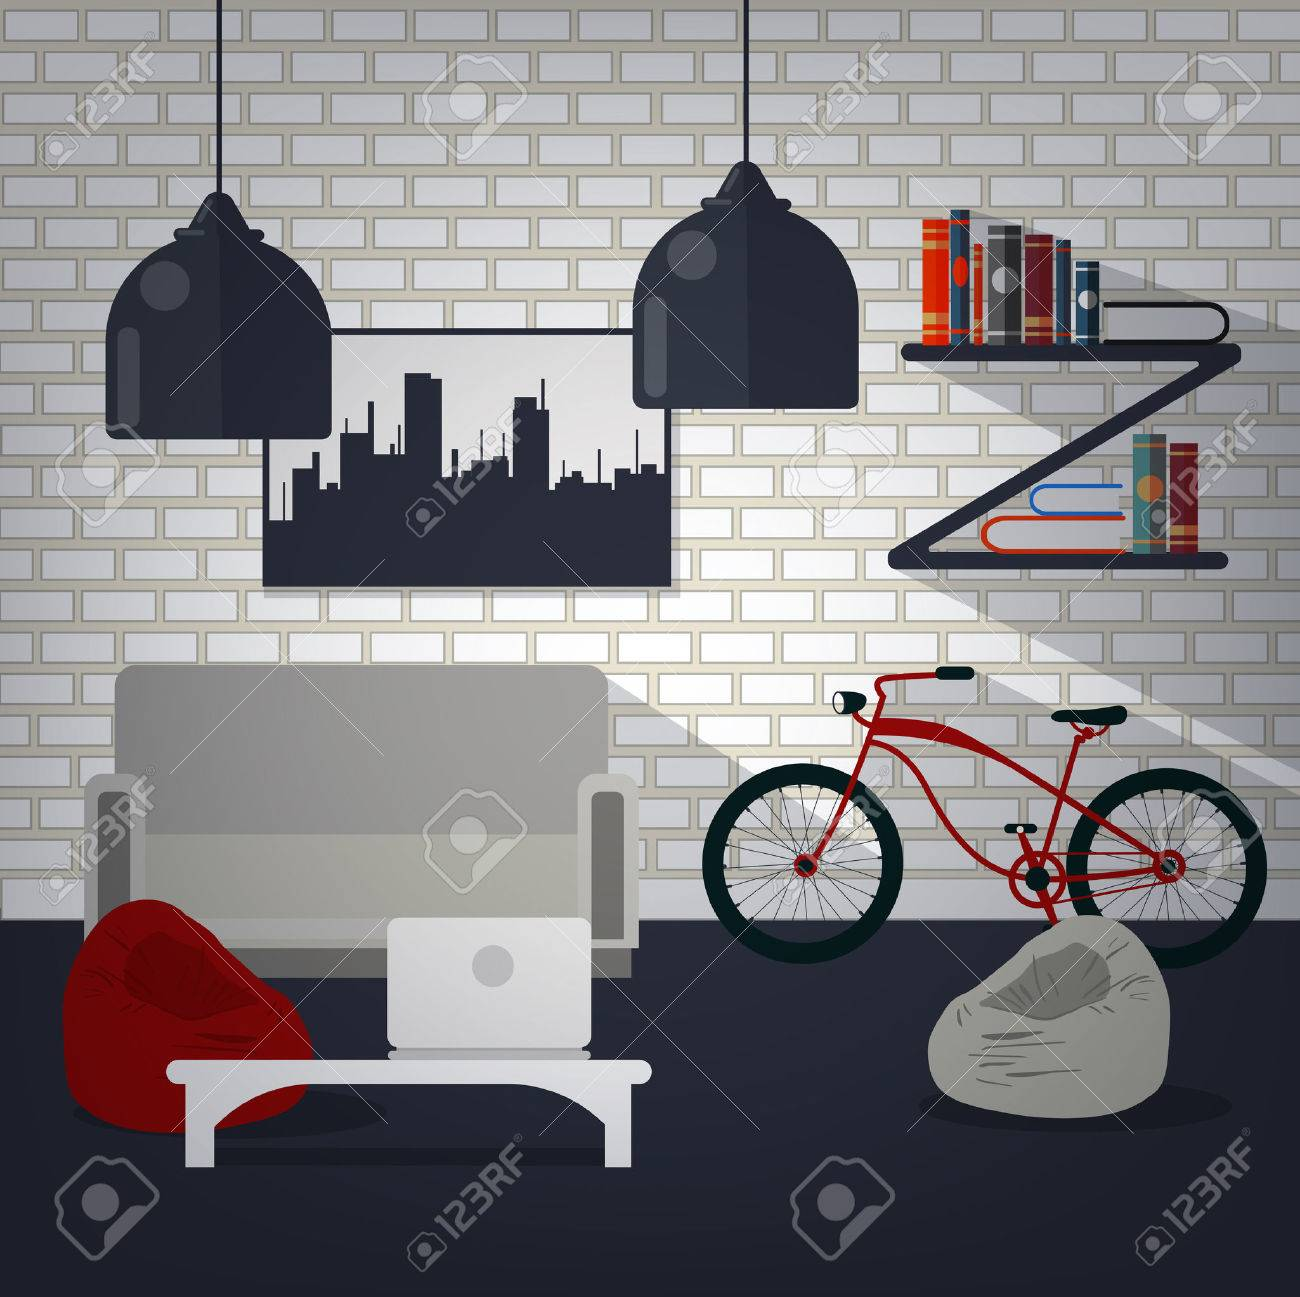 Modern Home Interior of Living Room with Bycicle, Books and Laptop. Home Sweet Home. Vector illustration in flat style Foto de archivo - 52074495